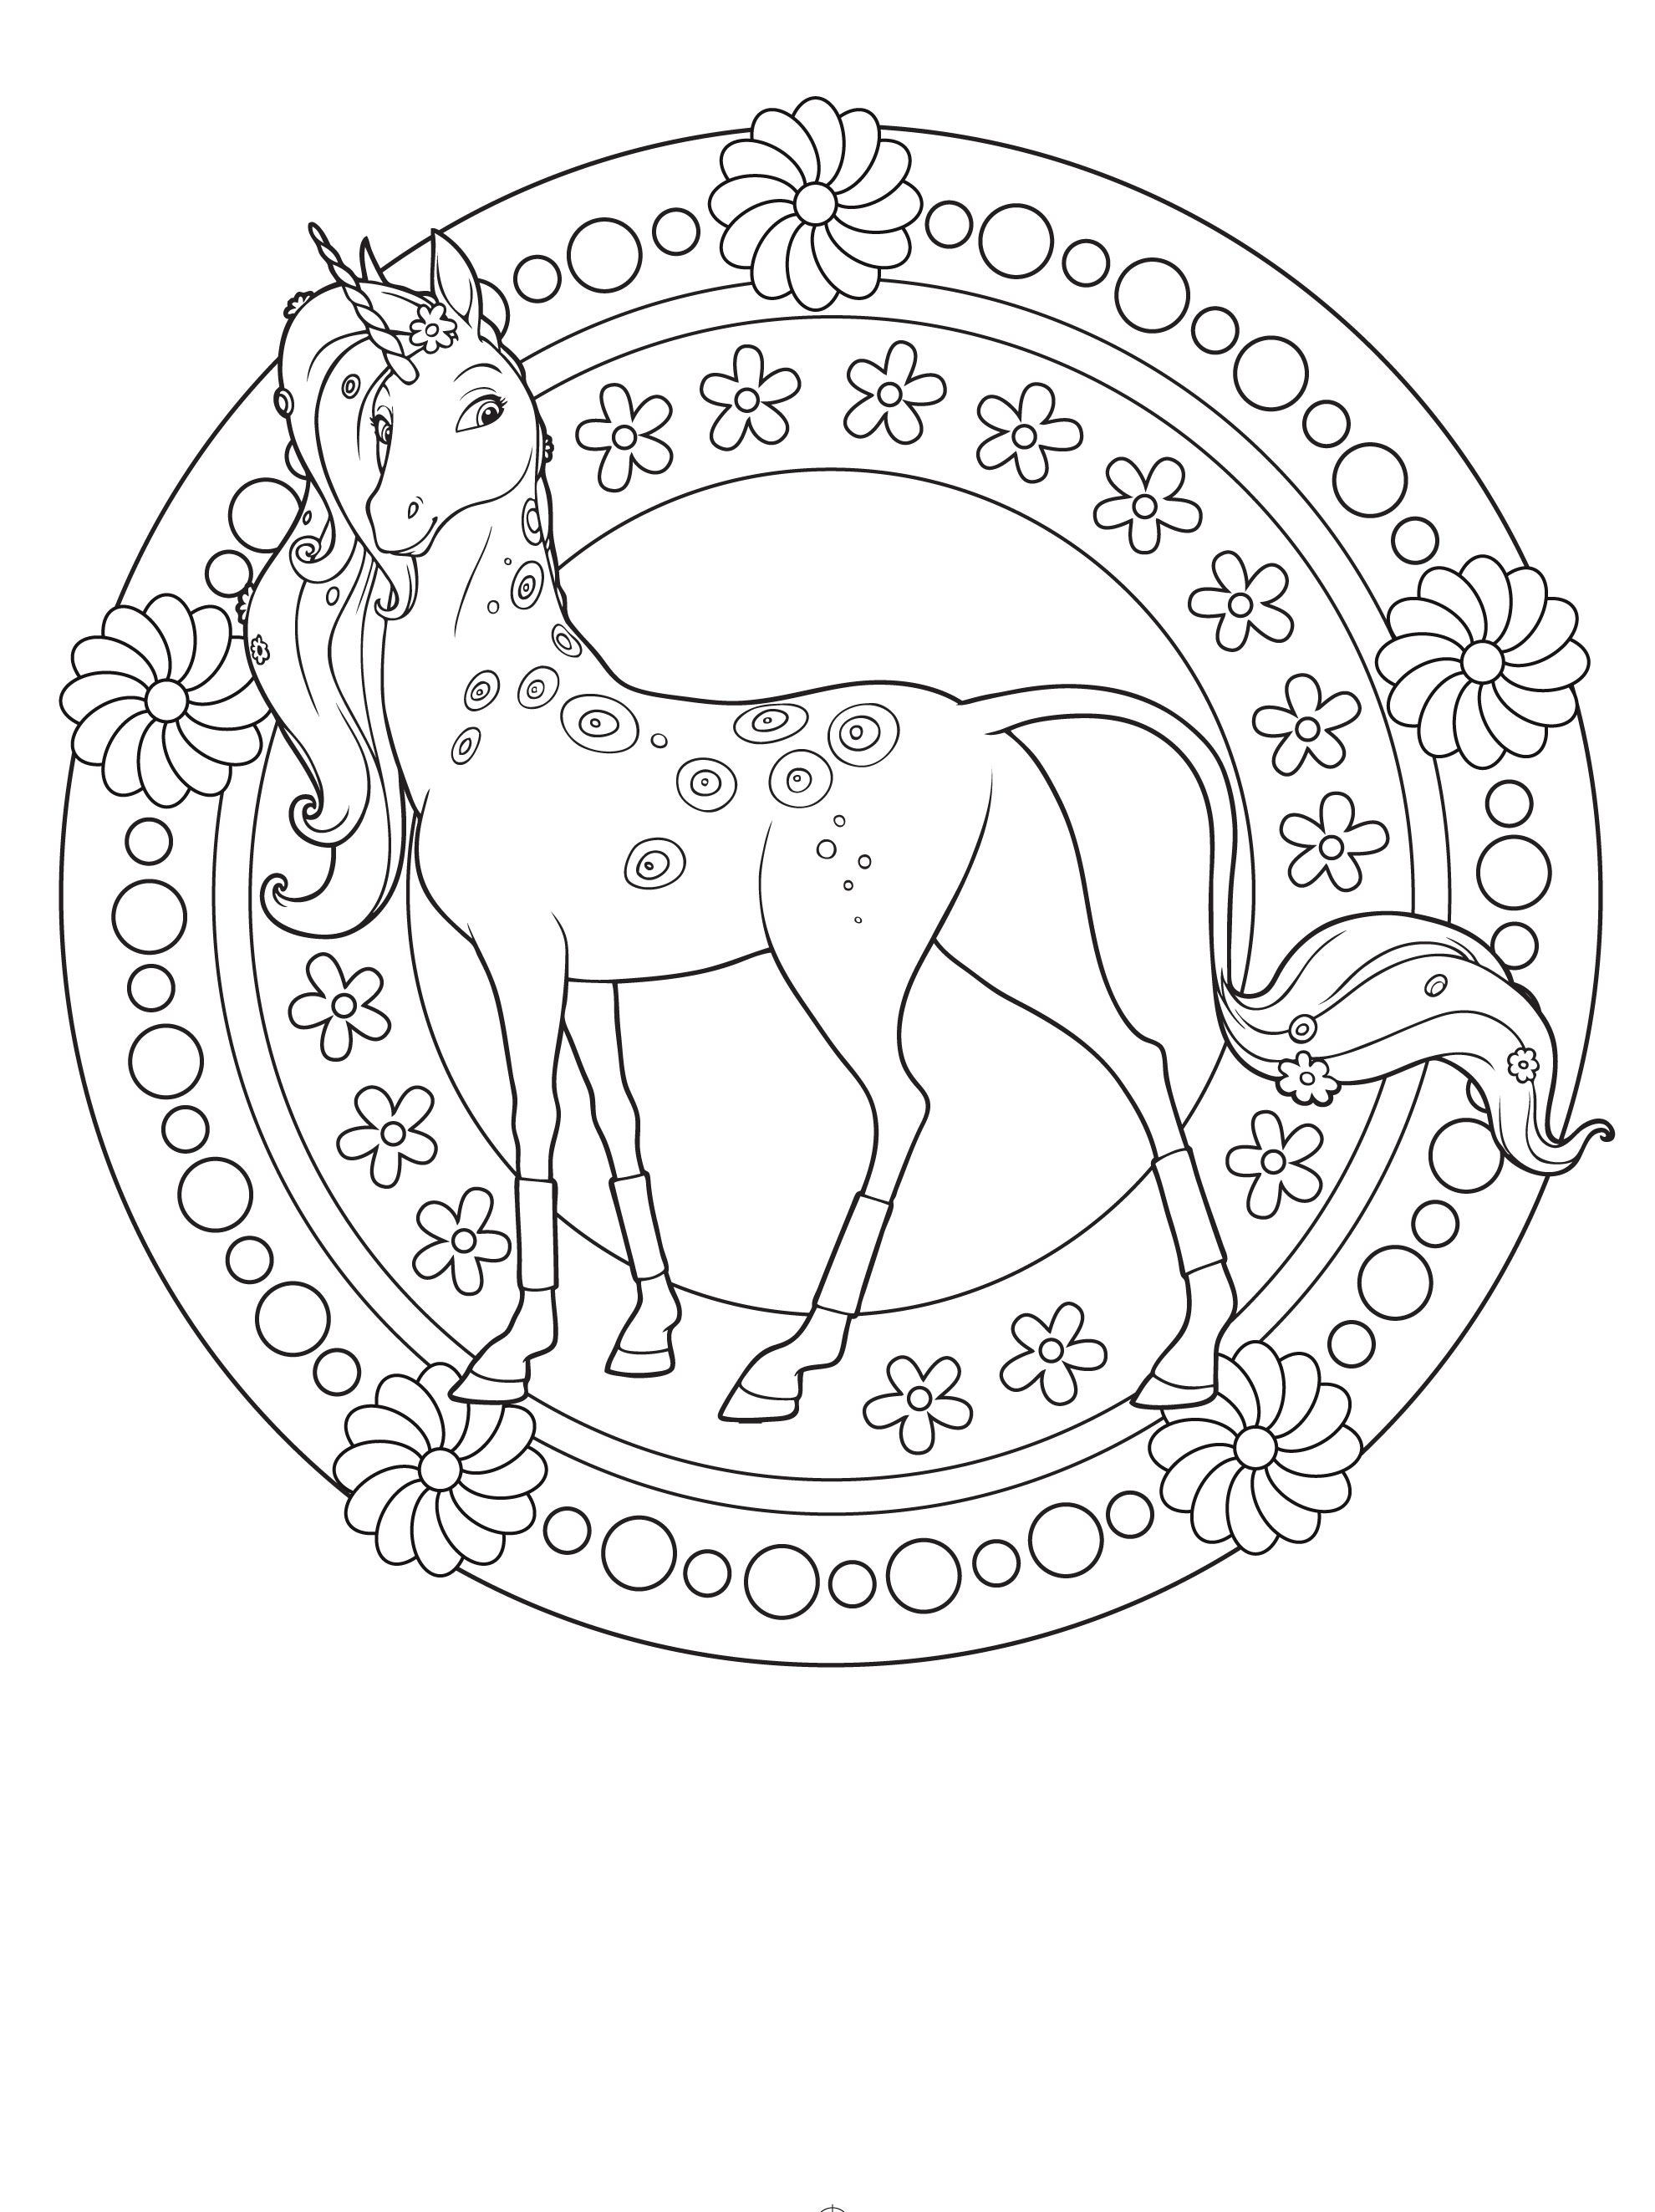 Ausmalbilder Mia and Me Genial Coloring Pages Gallery Unicorn Coloring Pages for Children Book Bild